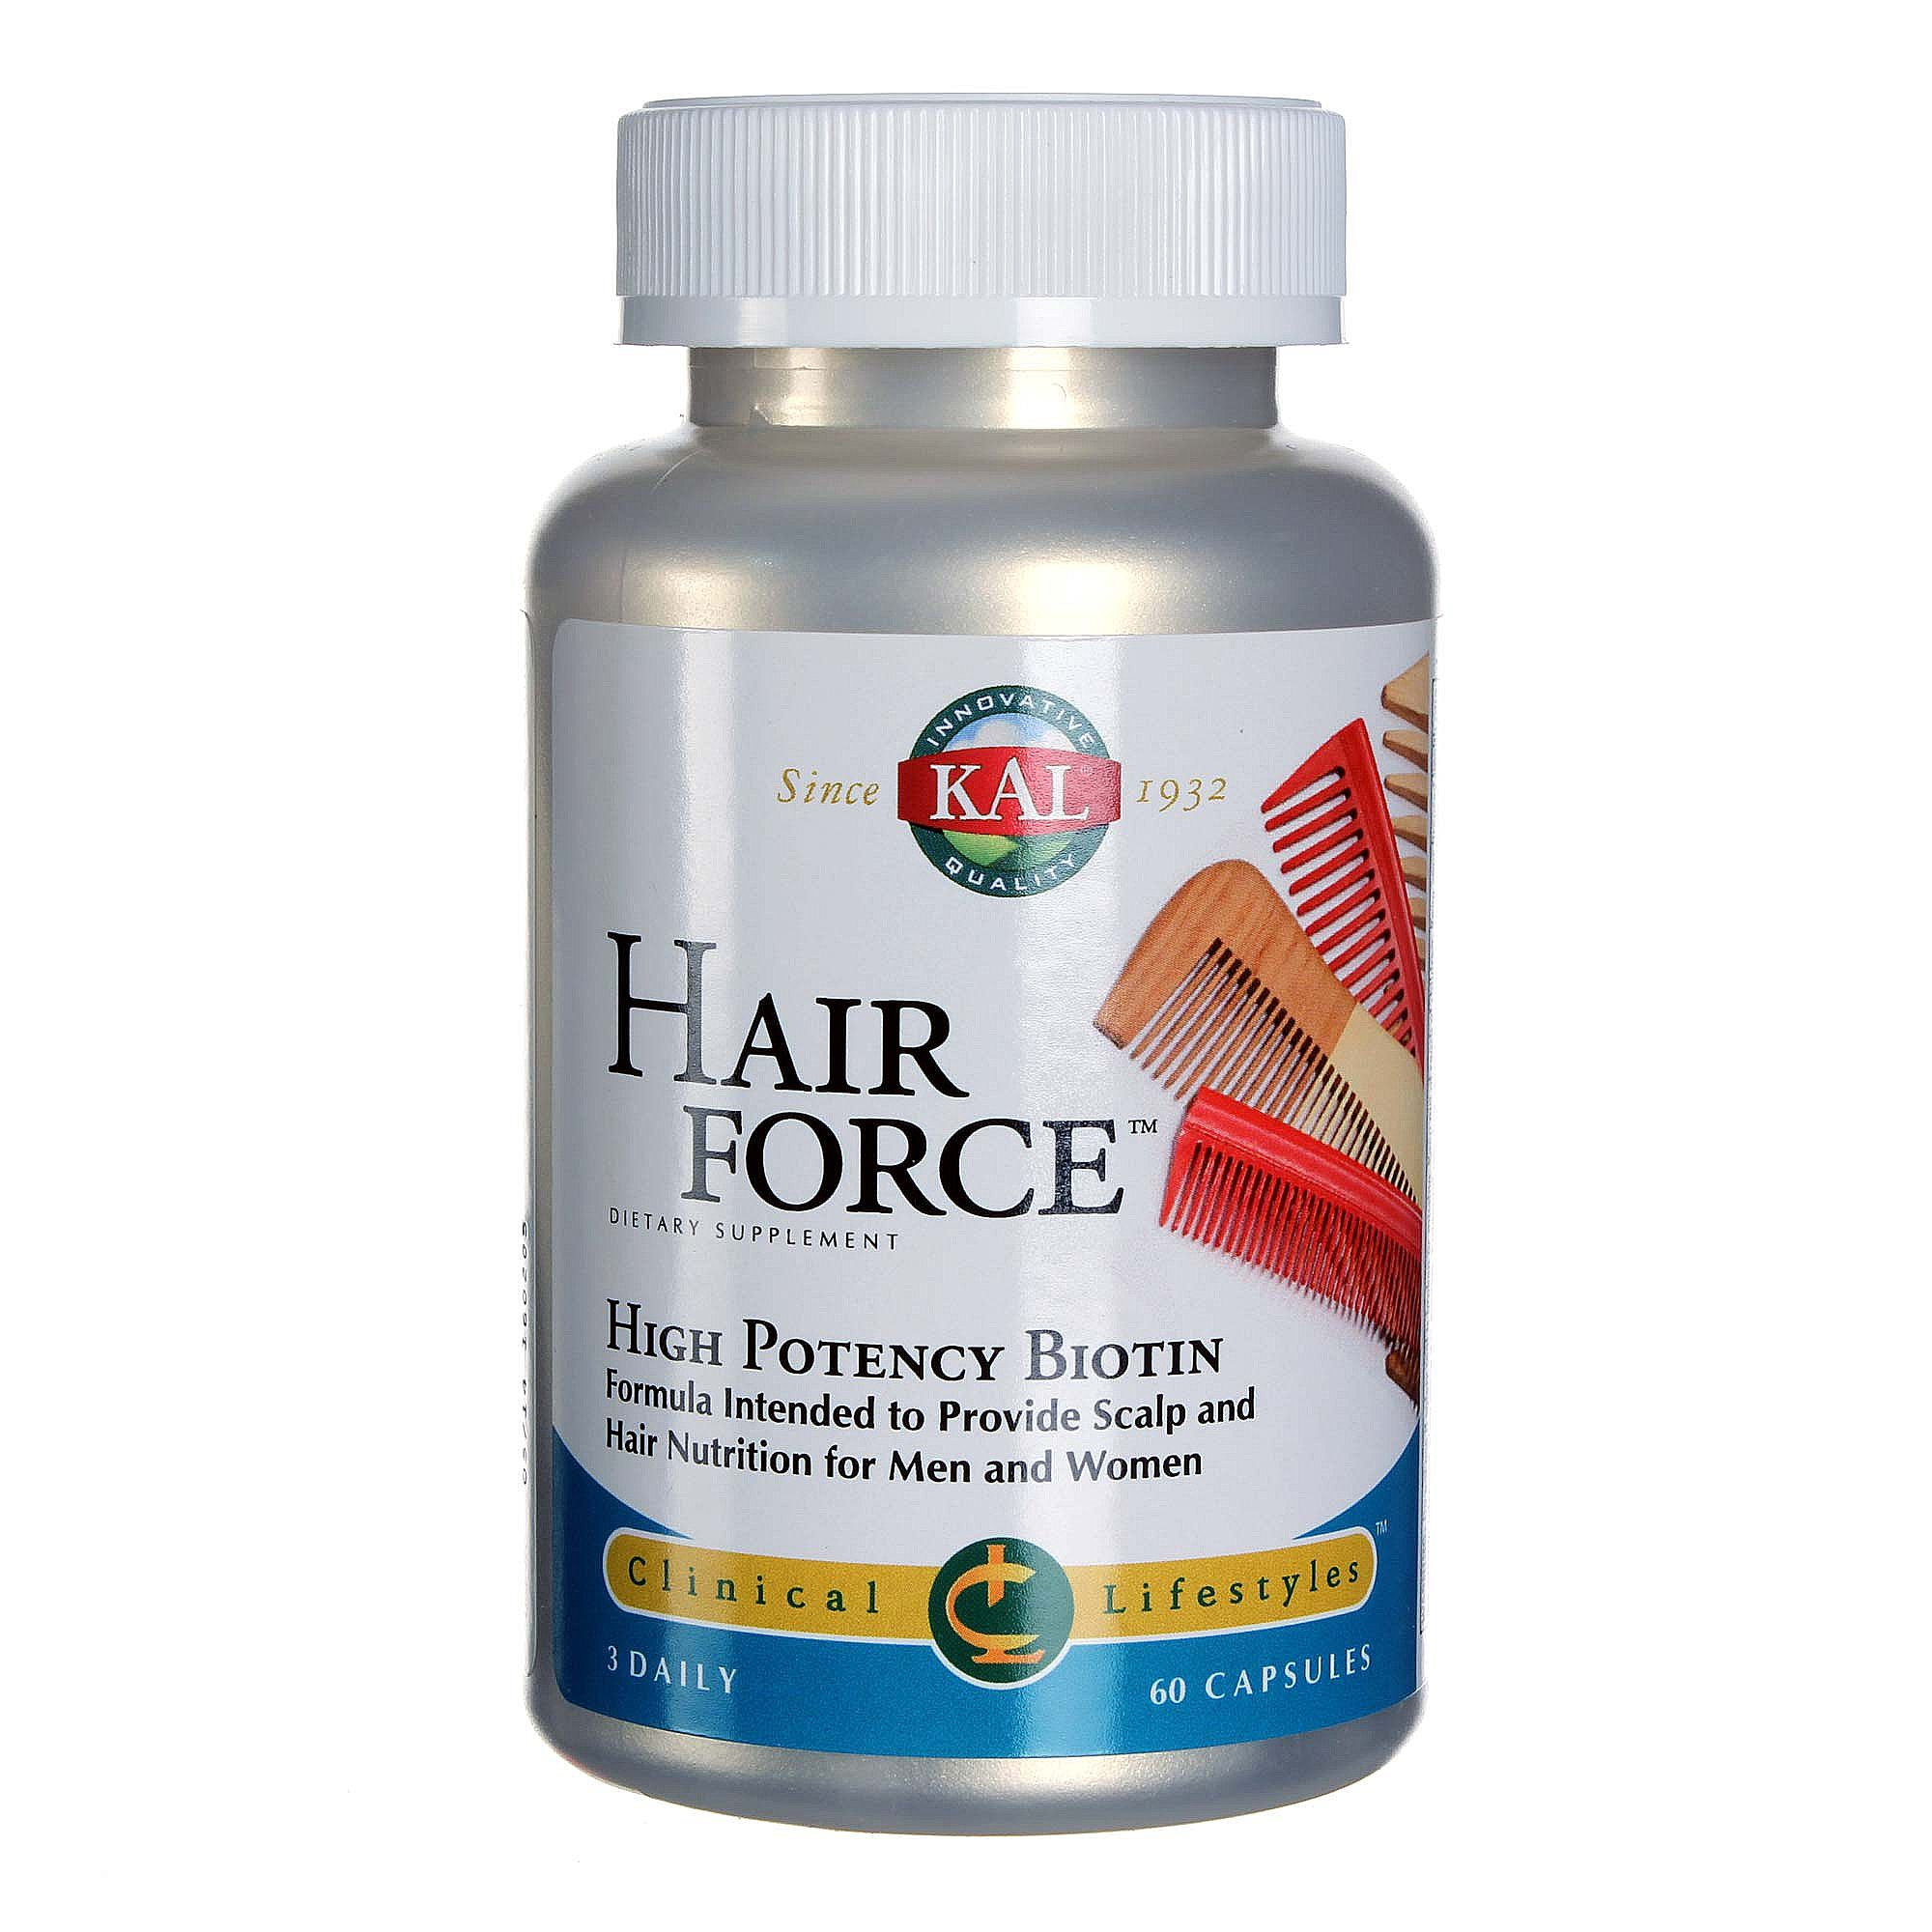 Hair Force by Home boxed Review – The New Hair Styling Trend From Home boxed